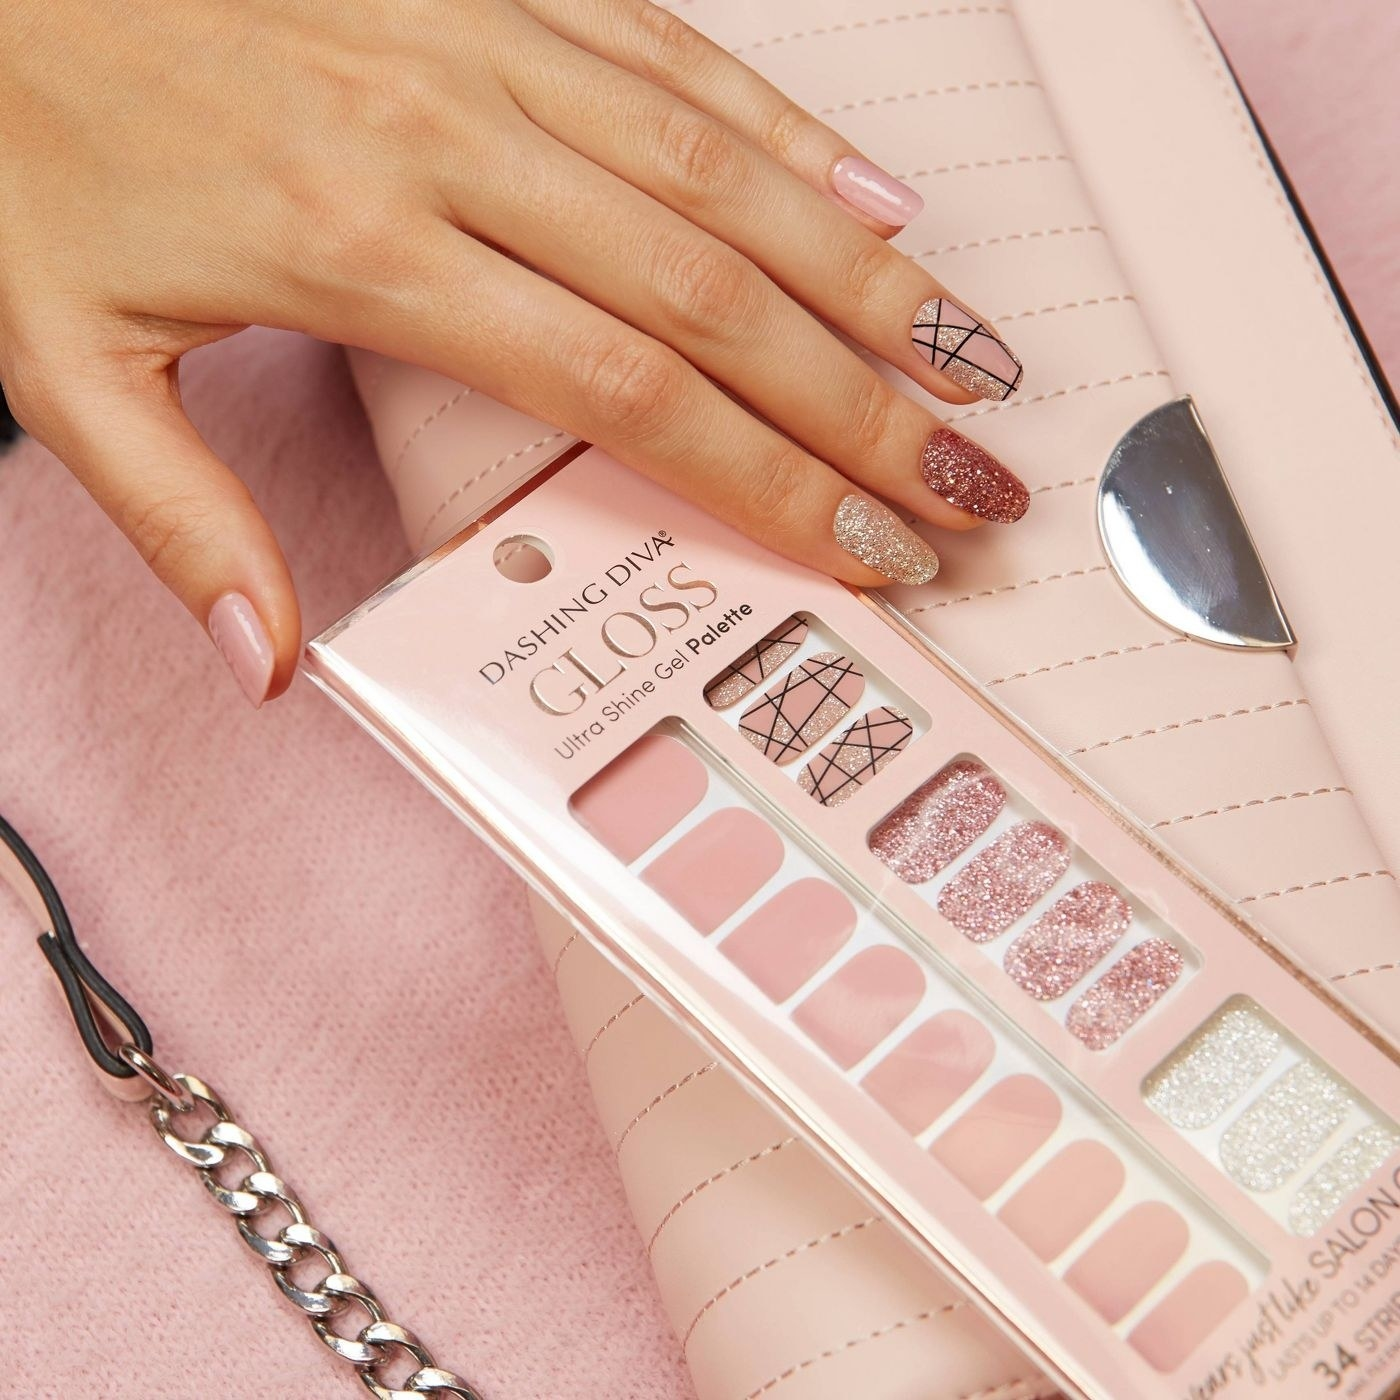 A hand reaching for a pack of light pink press on nails